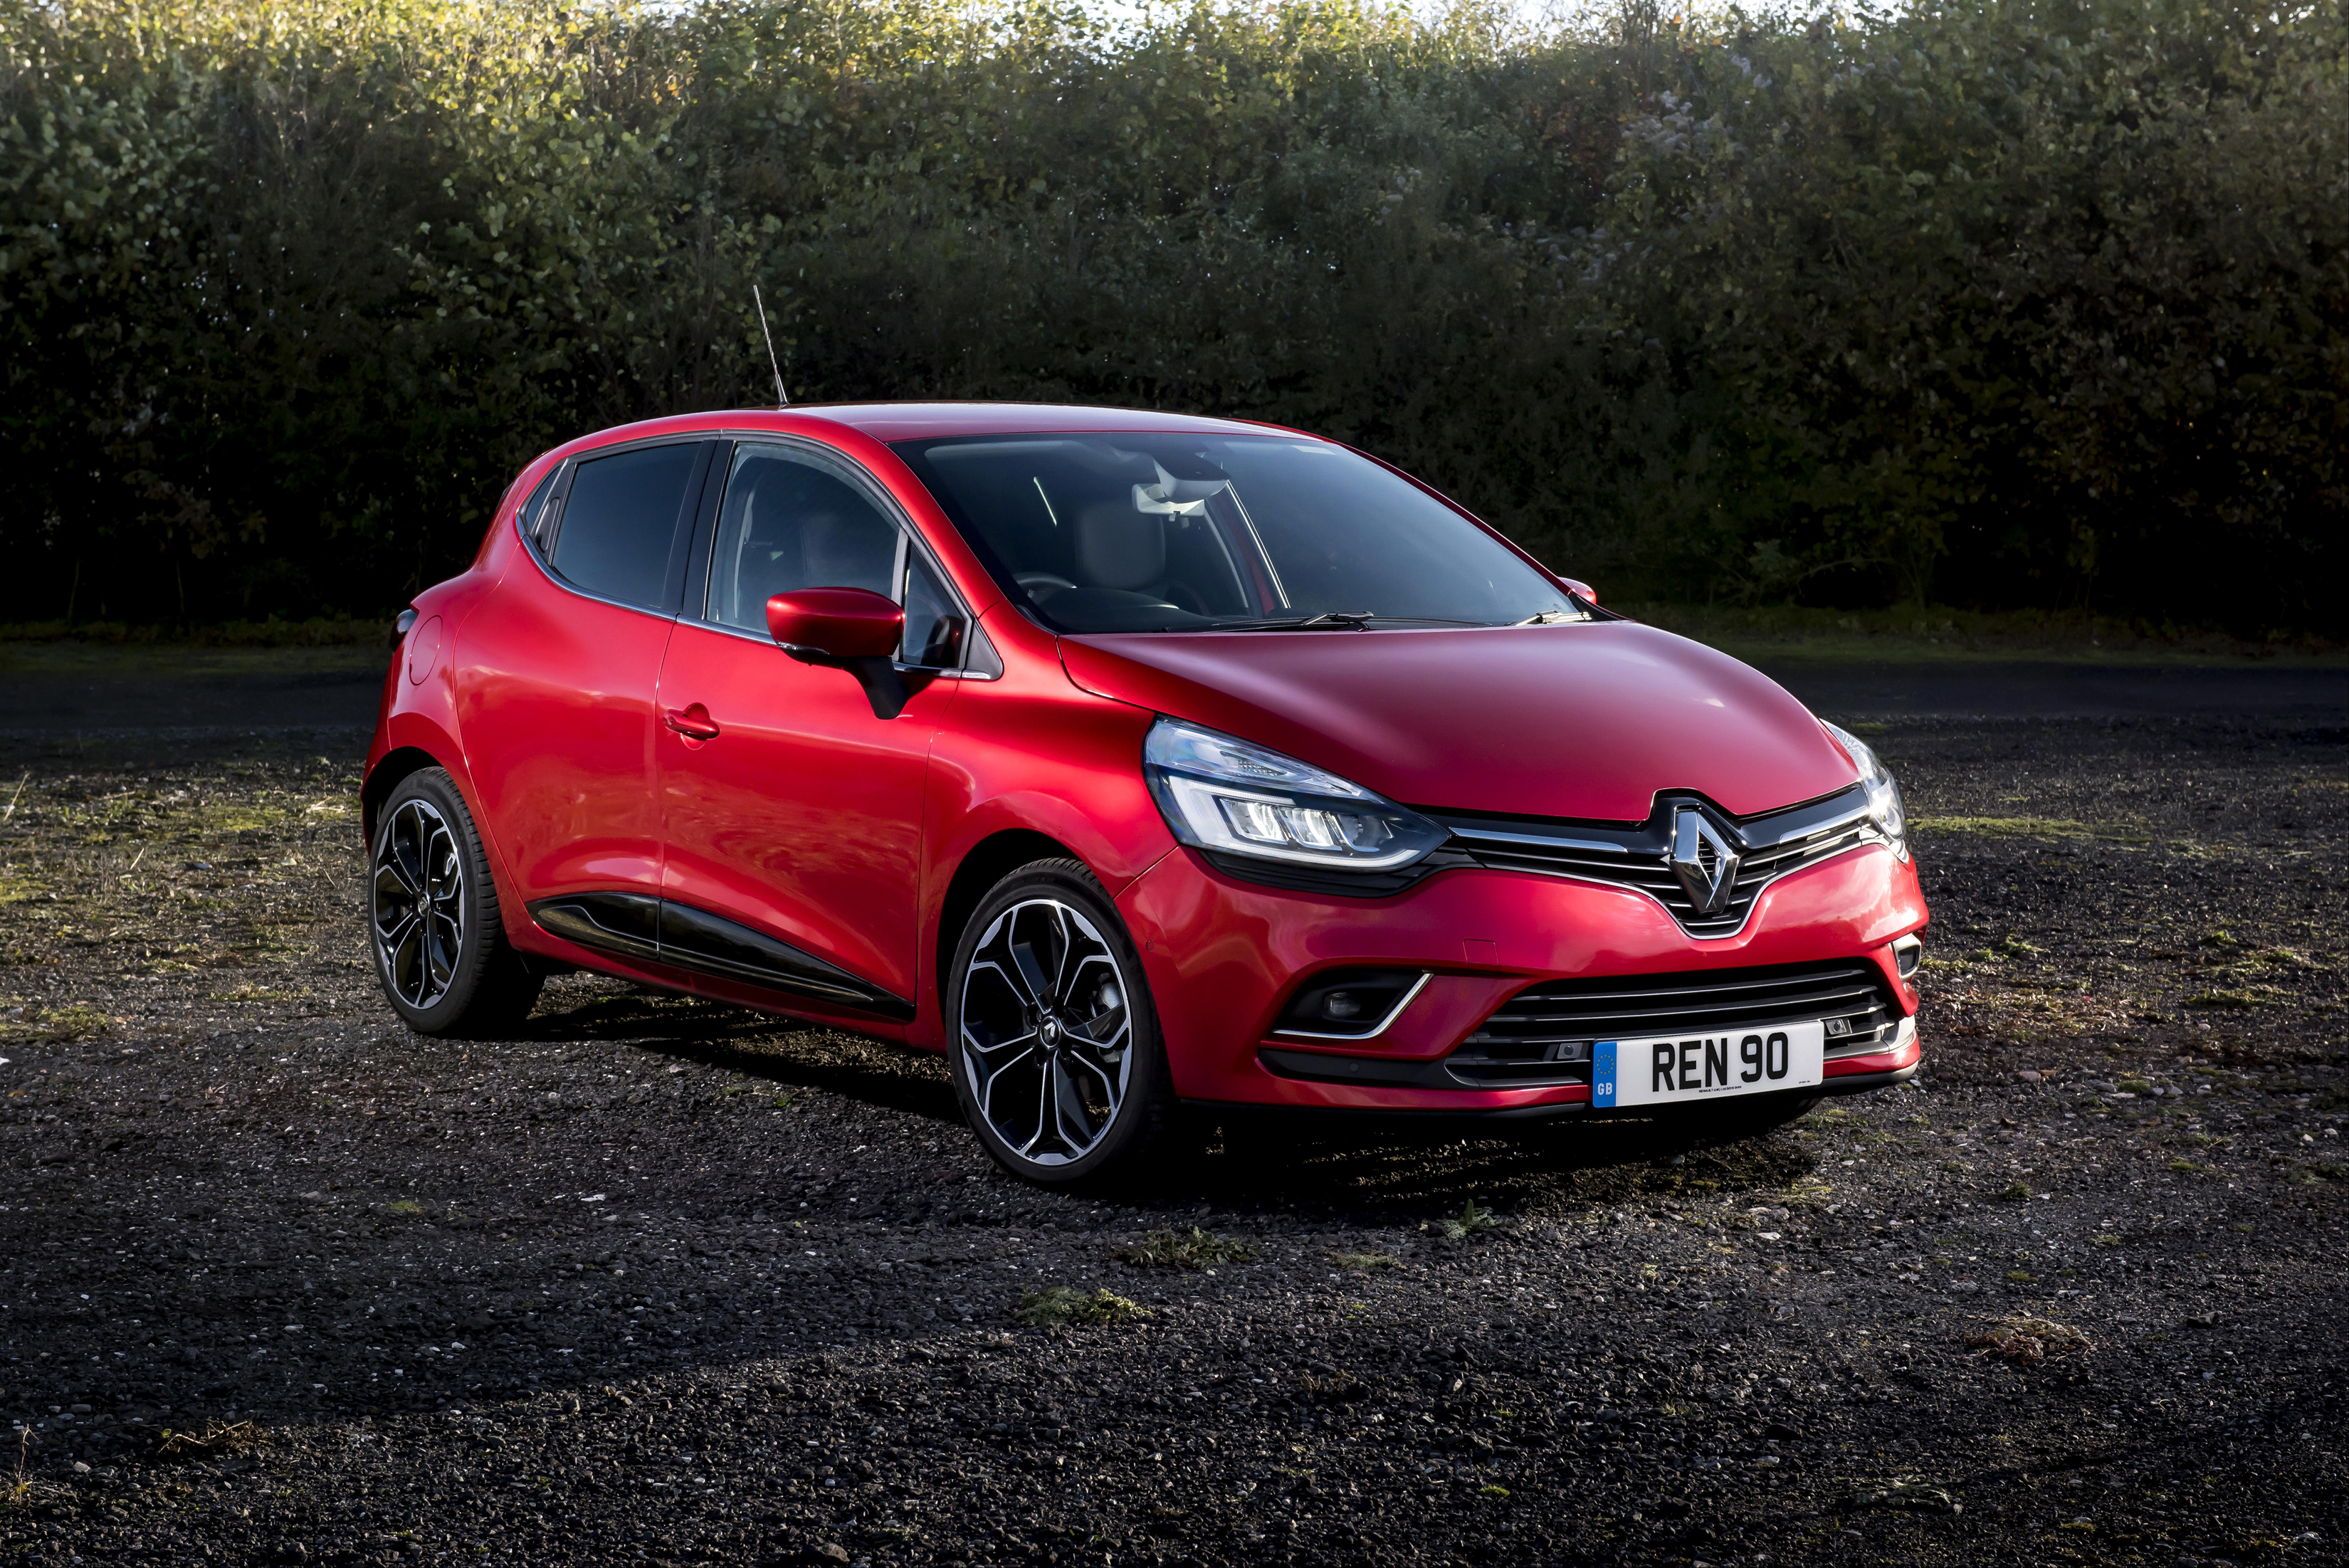 20 Renault Clio Hd Wallpapers Background Images Wallpaper Abyss